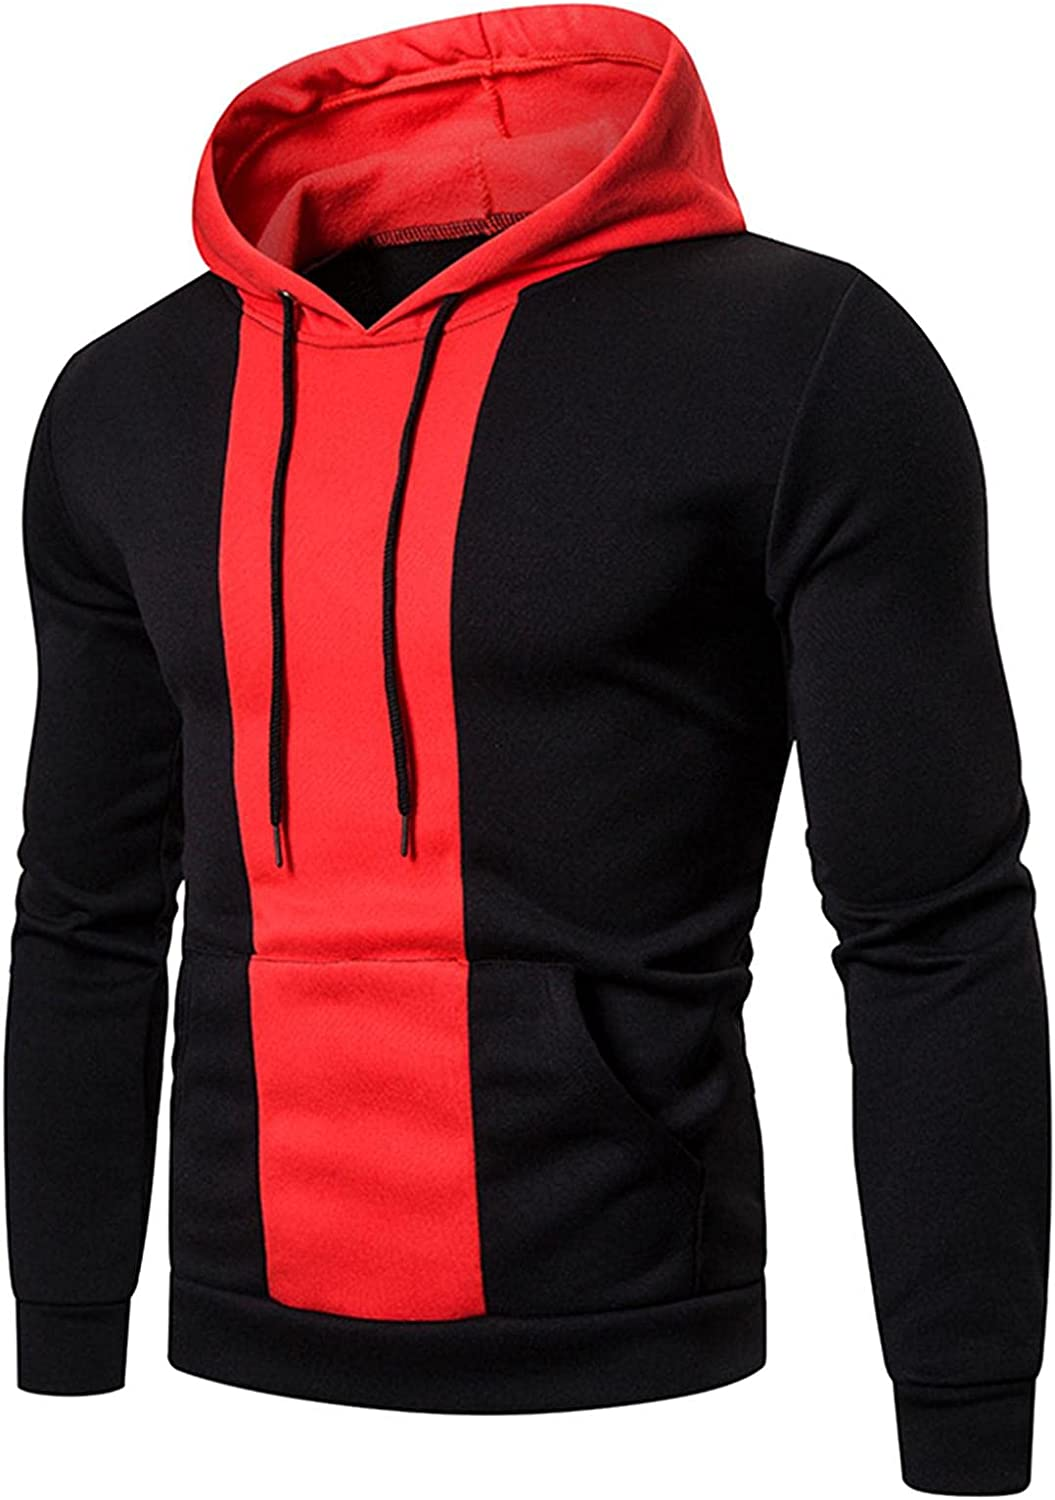 Mens Hoodies Tops Men's Casual Color Splice Long Sleeve Tops Round Neck Drawstring Fashion Sweatshirt And Hoodies Blouses